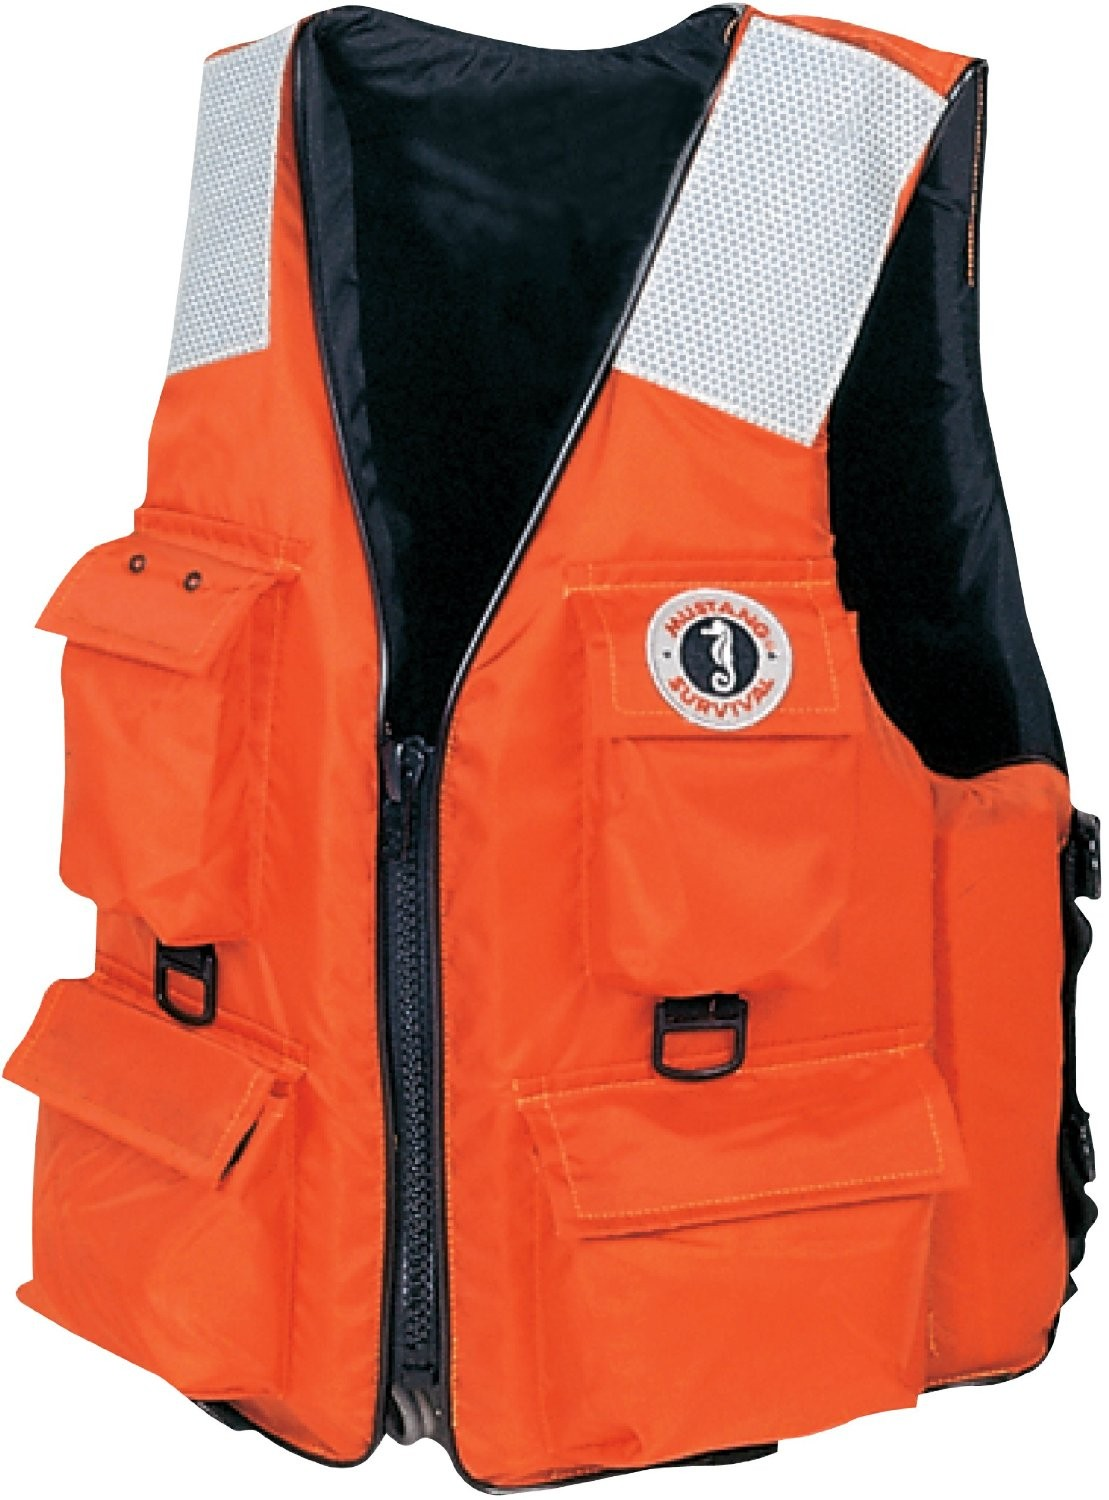 Mustang Survival Life Vest Adult